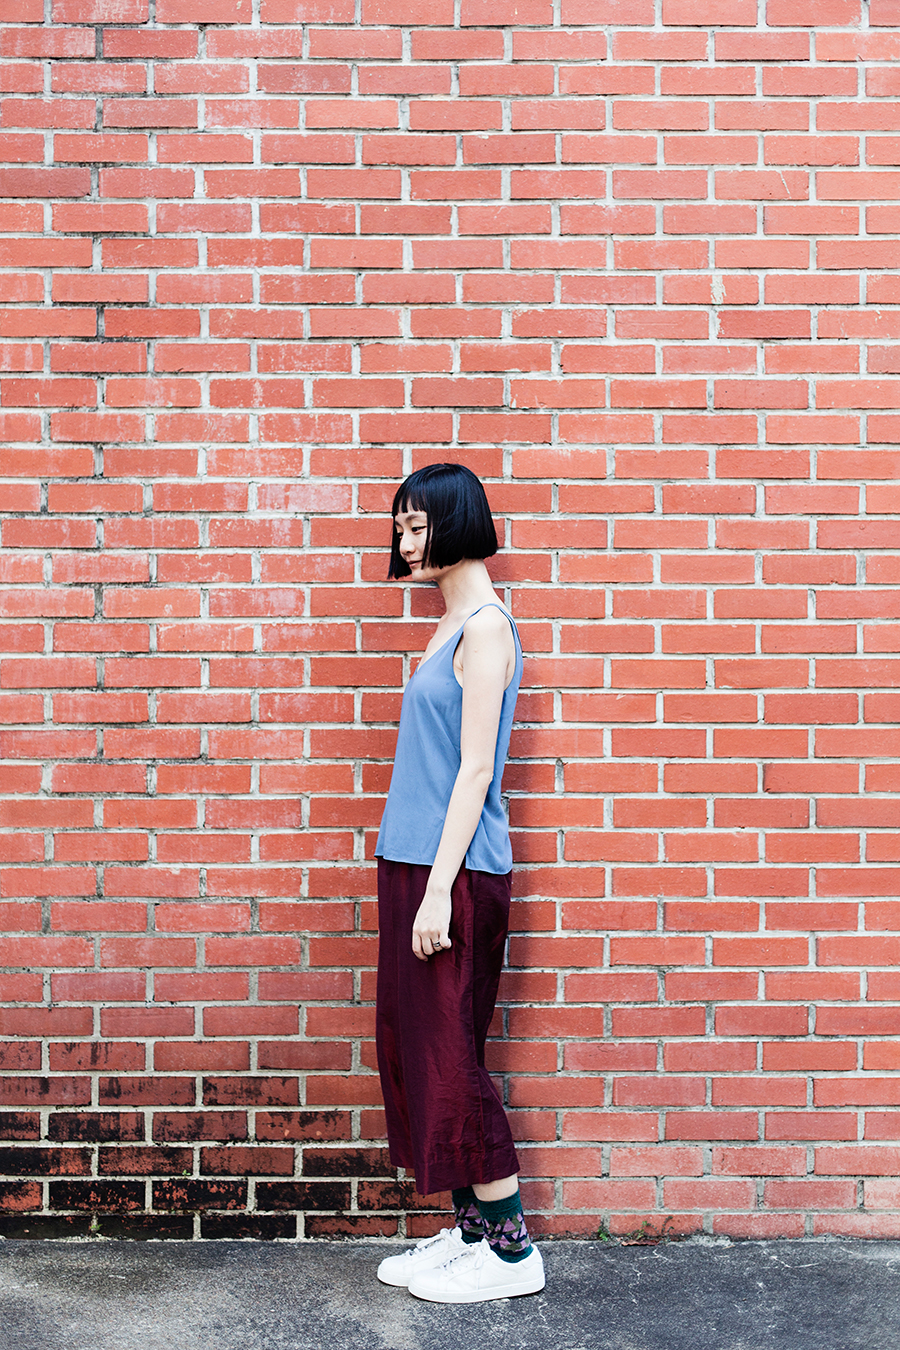 Haircut by Reds Hairdressing: Topshop powder blue top, Max red shimmer pants, Paperplanes white sneakers.